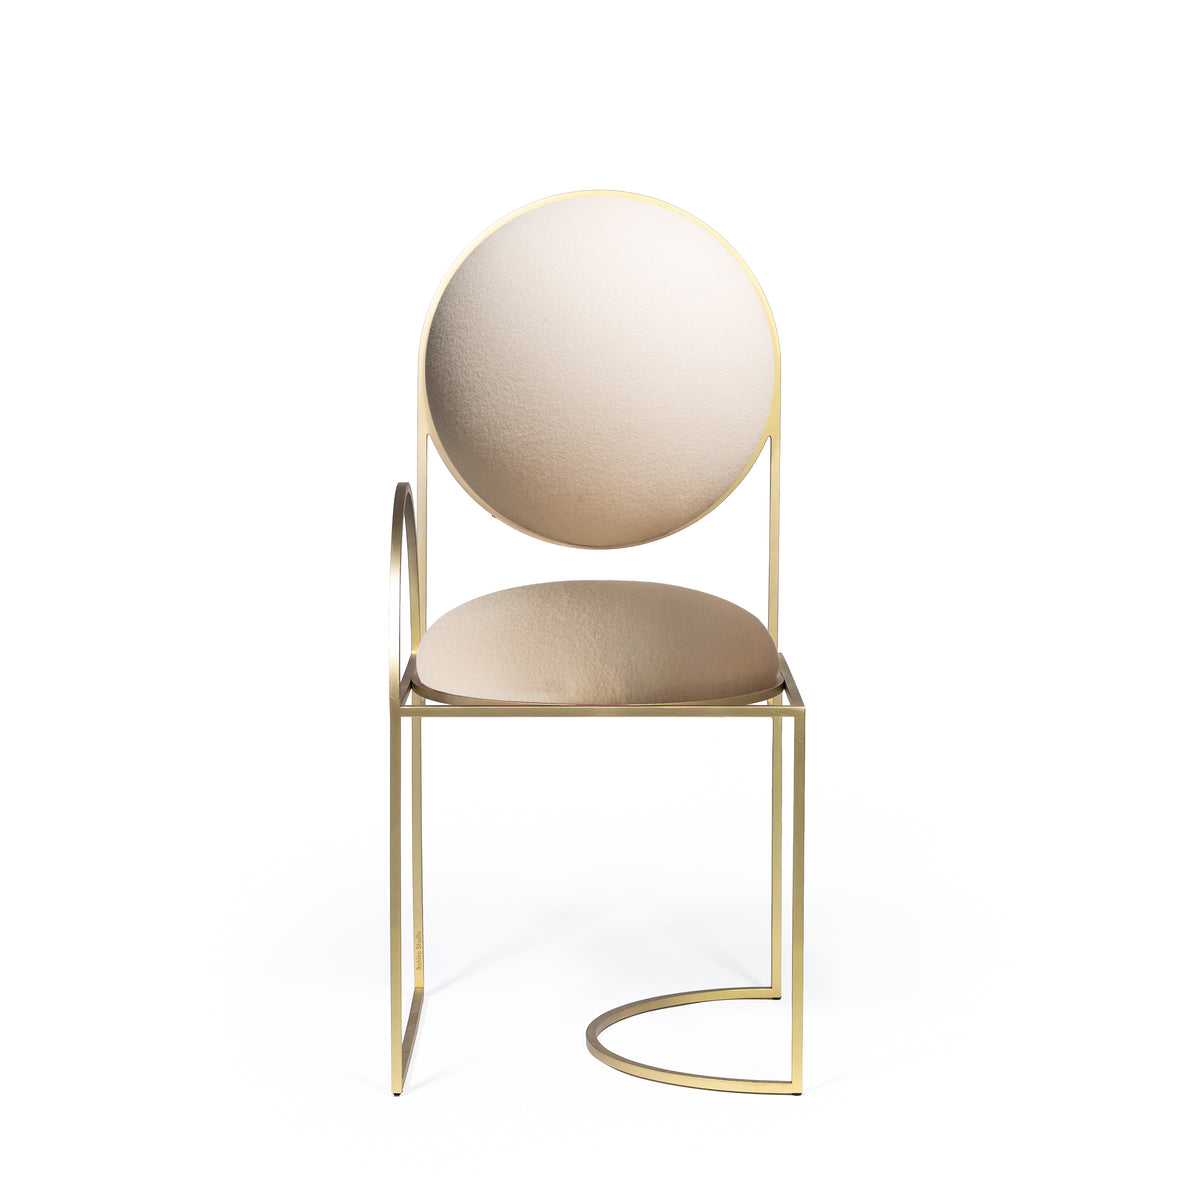 SOLAR CHAIR - CREAM